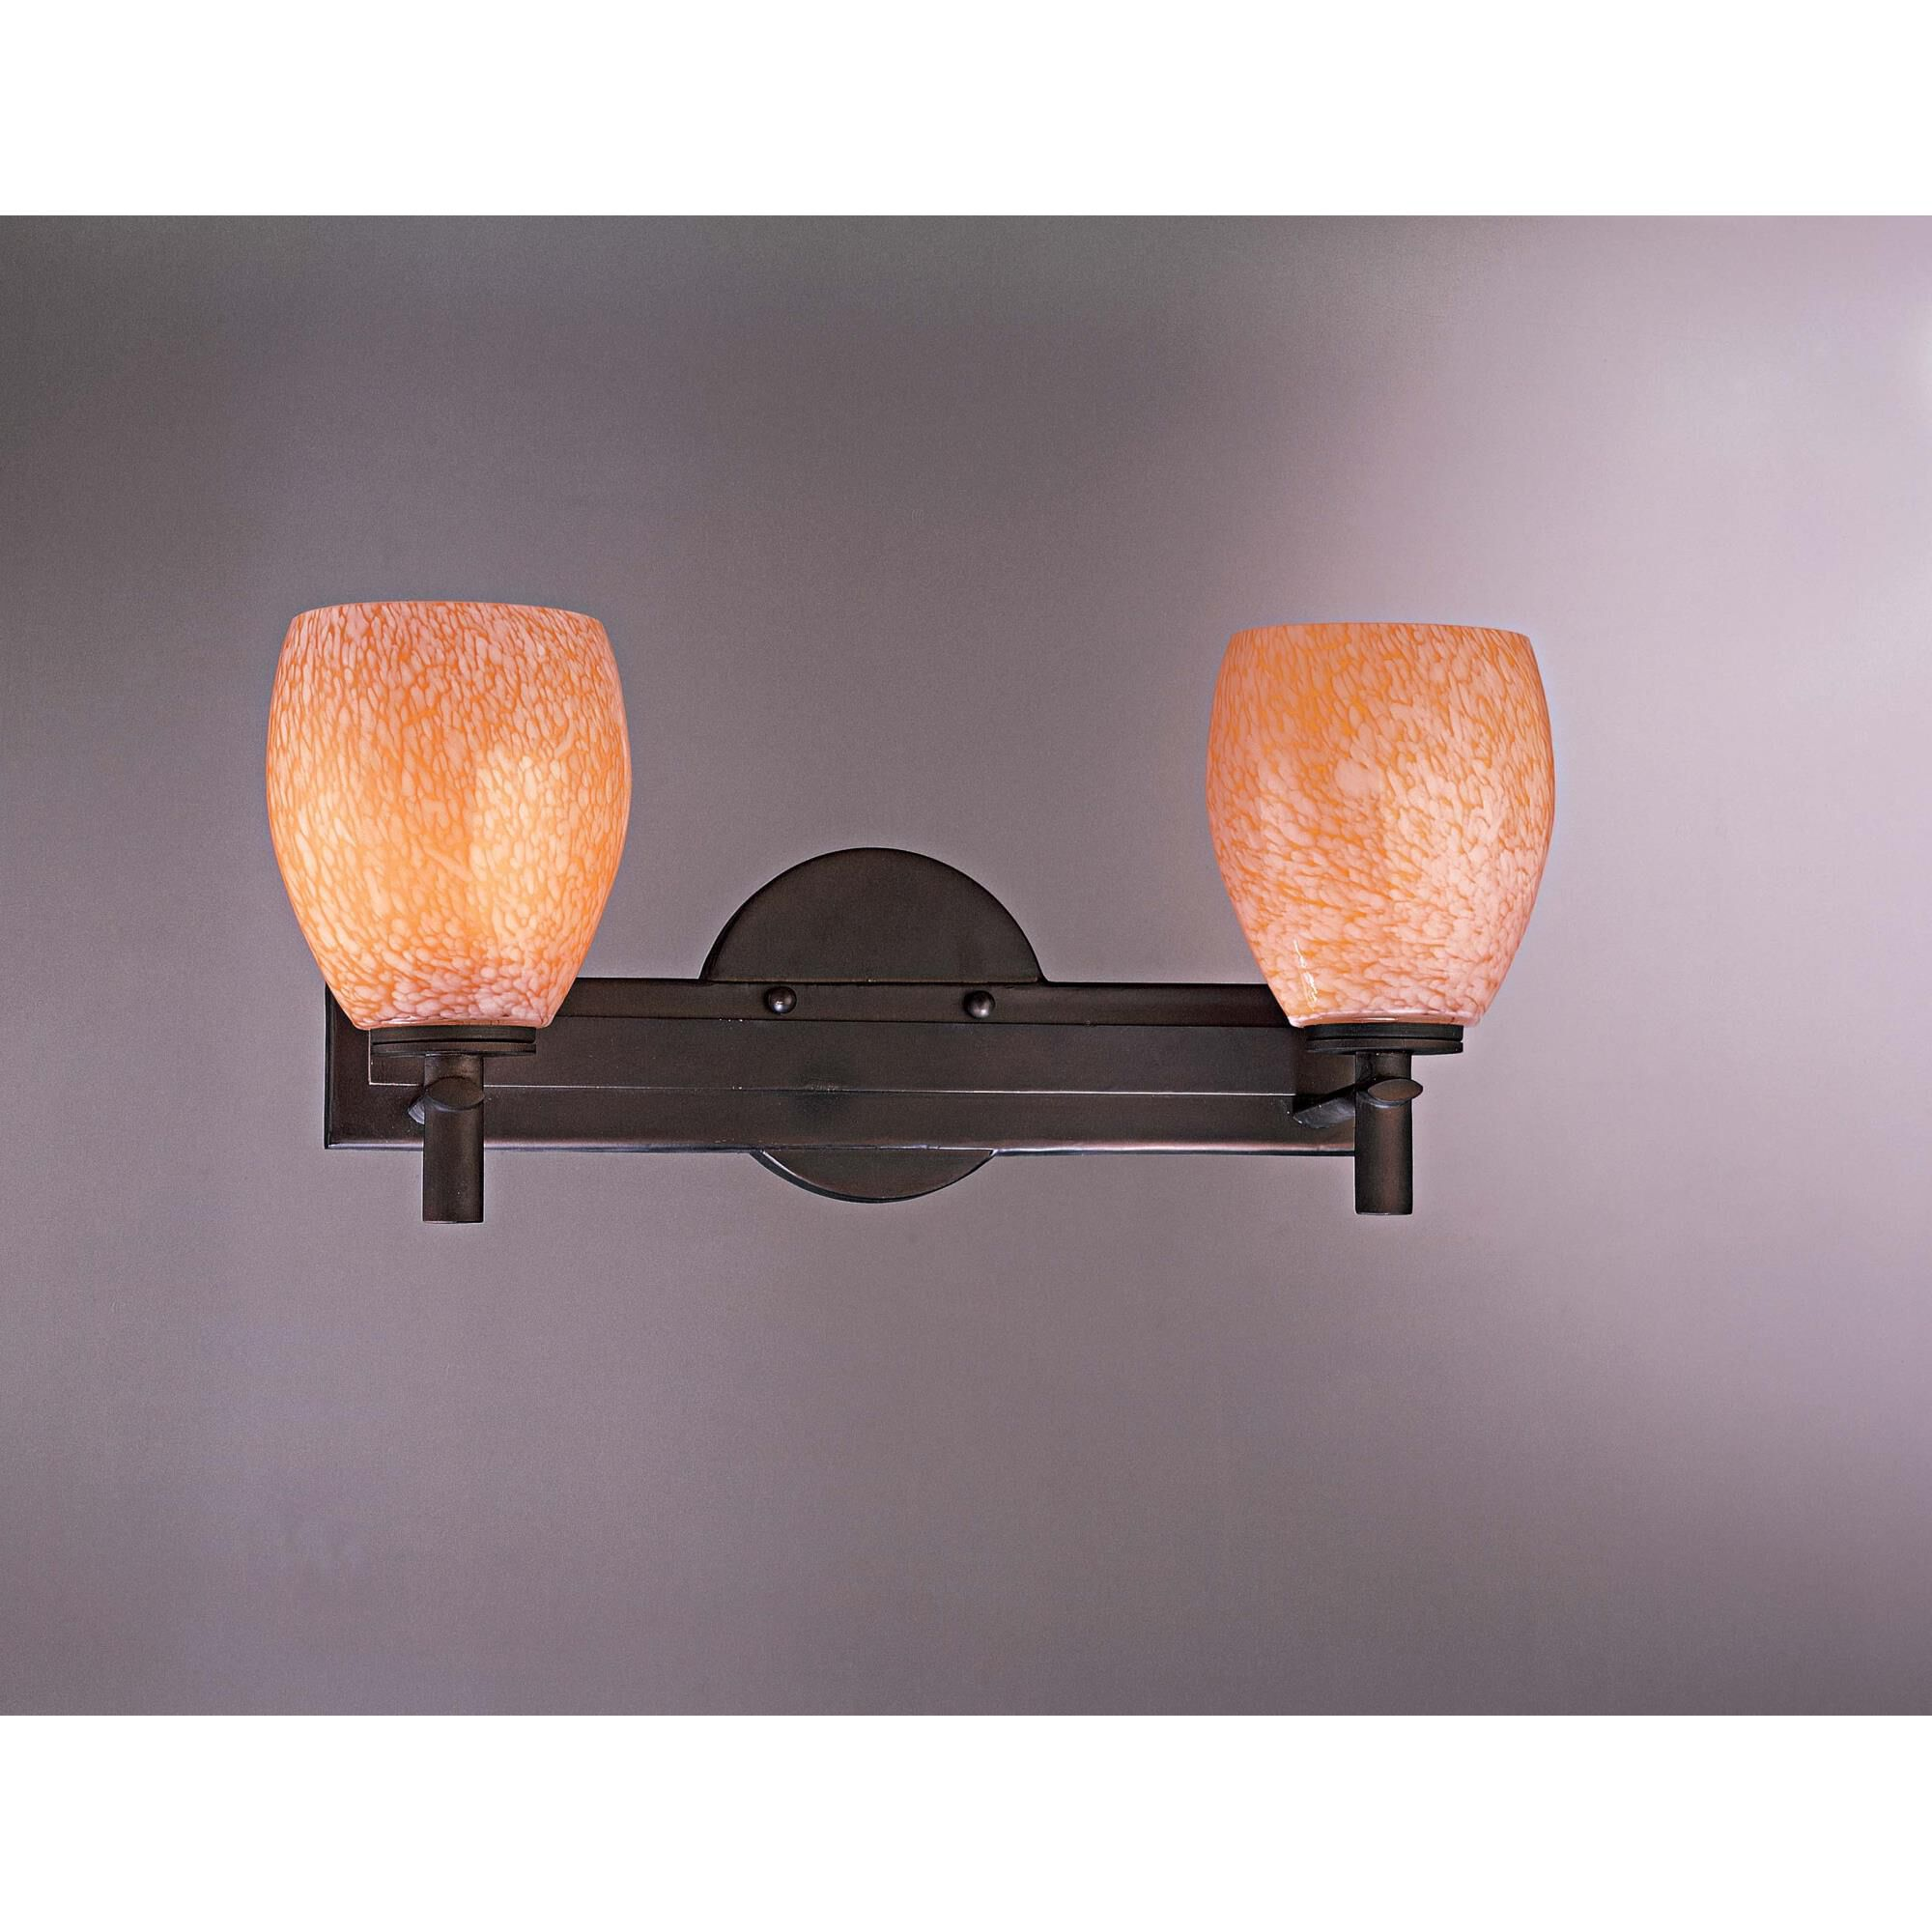 Kovacs 17 Inch 2 Light Bath Vanity Light - P5112-617 - Craftsman-mission